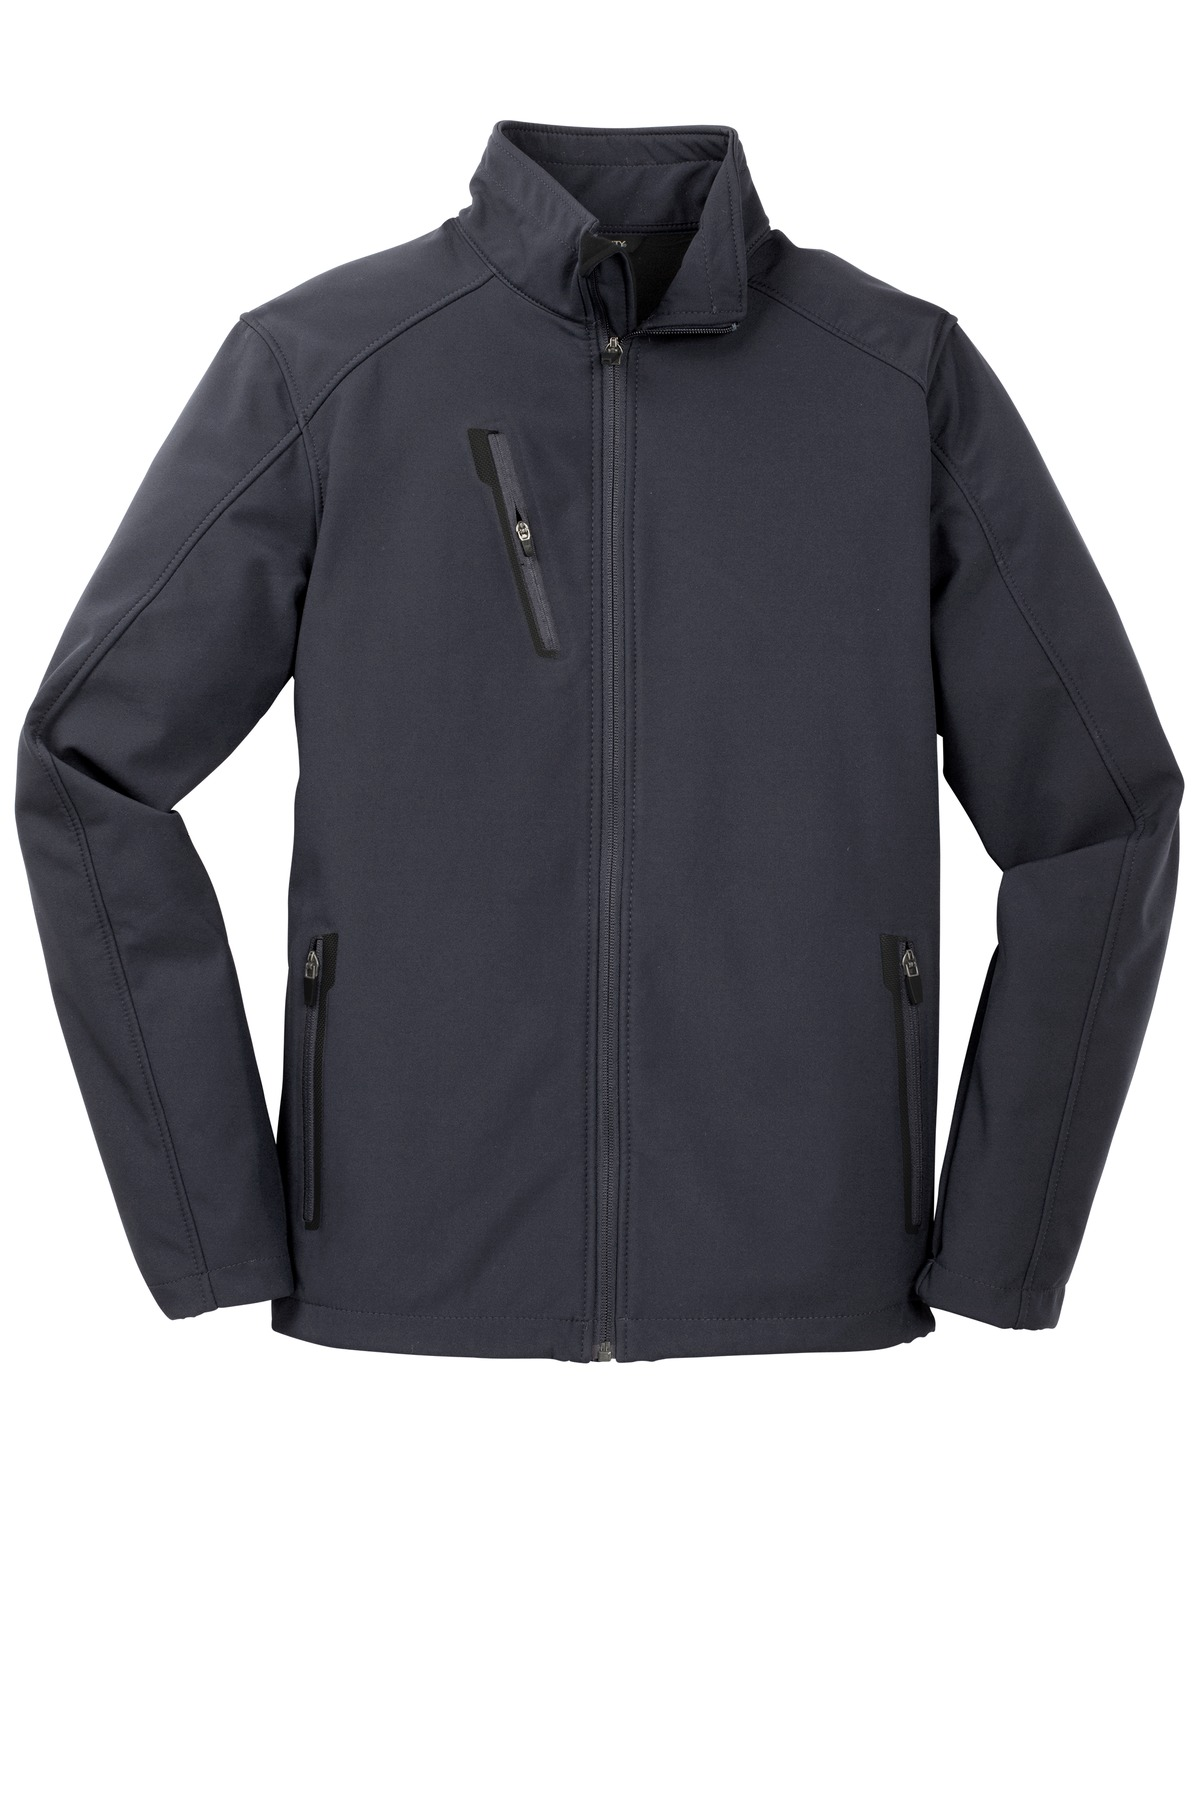 Welded Soft Shell Jacket - RCG1320